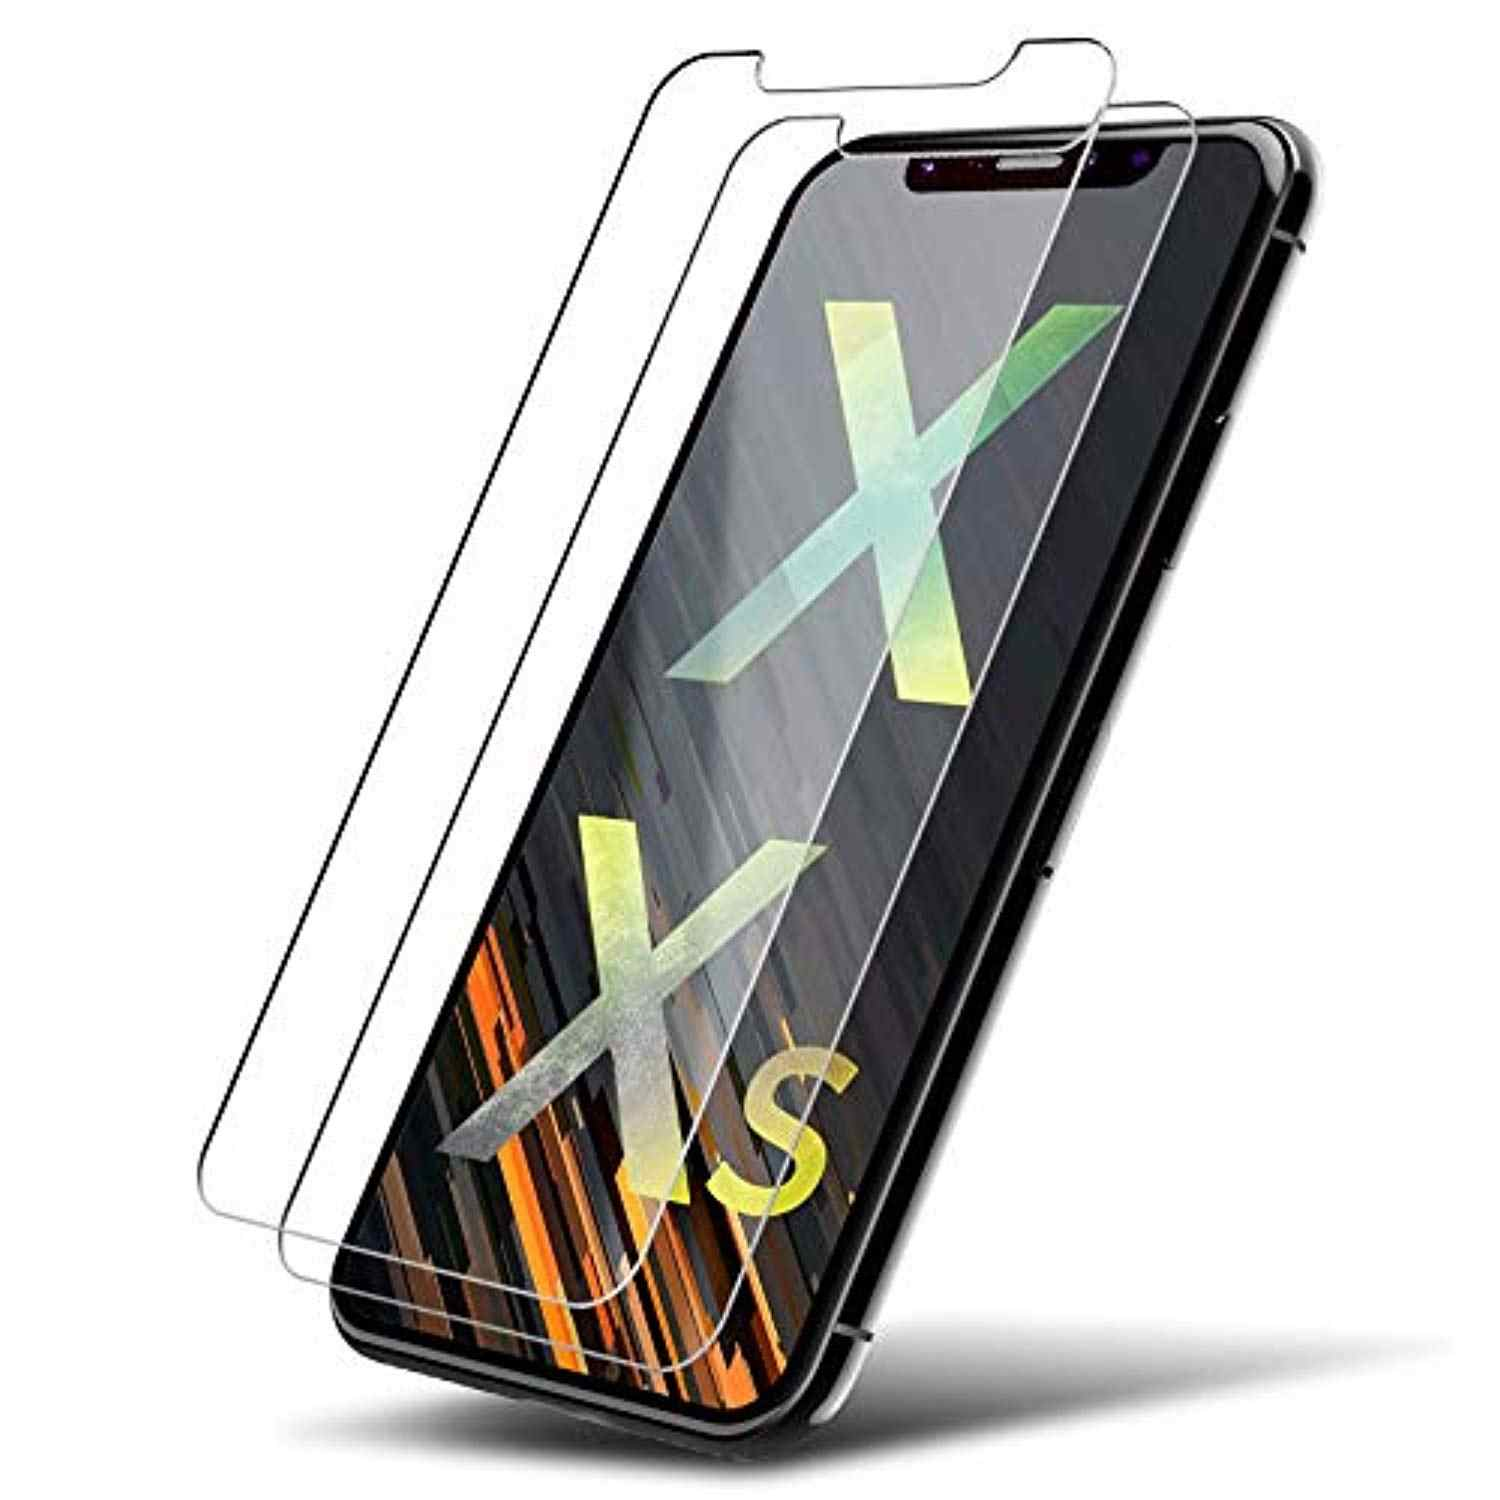 2pcs 9H Screen protector Tempered glass For iPhone XS Max X 7 8 6 6S Plus 5 5S 5C SE Cover guard glass for iPhone X XR Glas Case